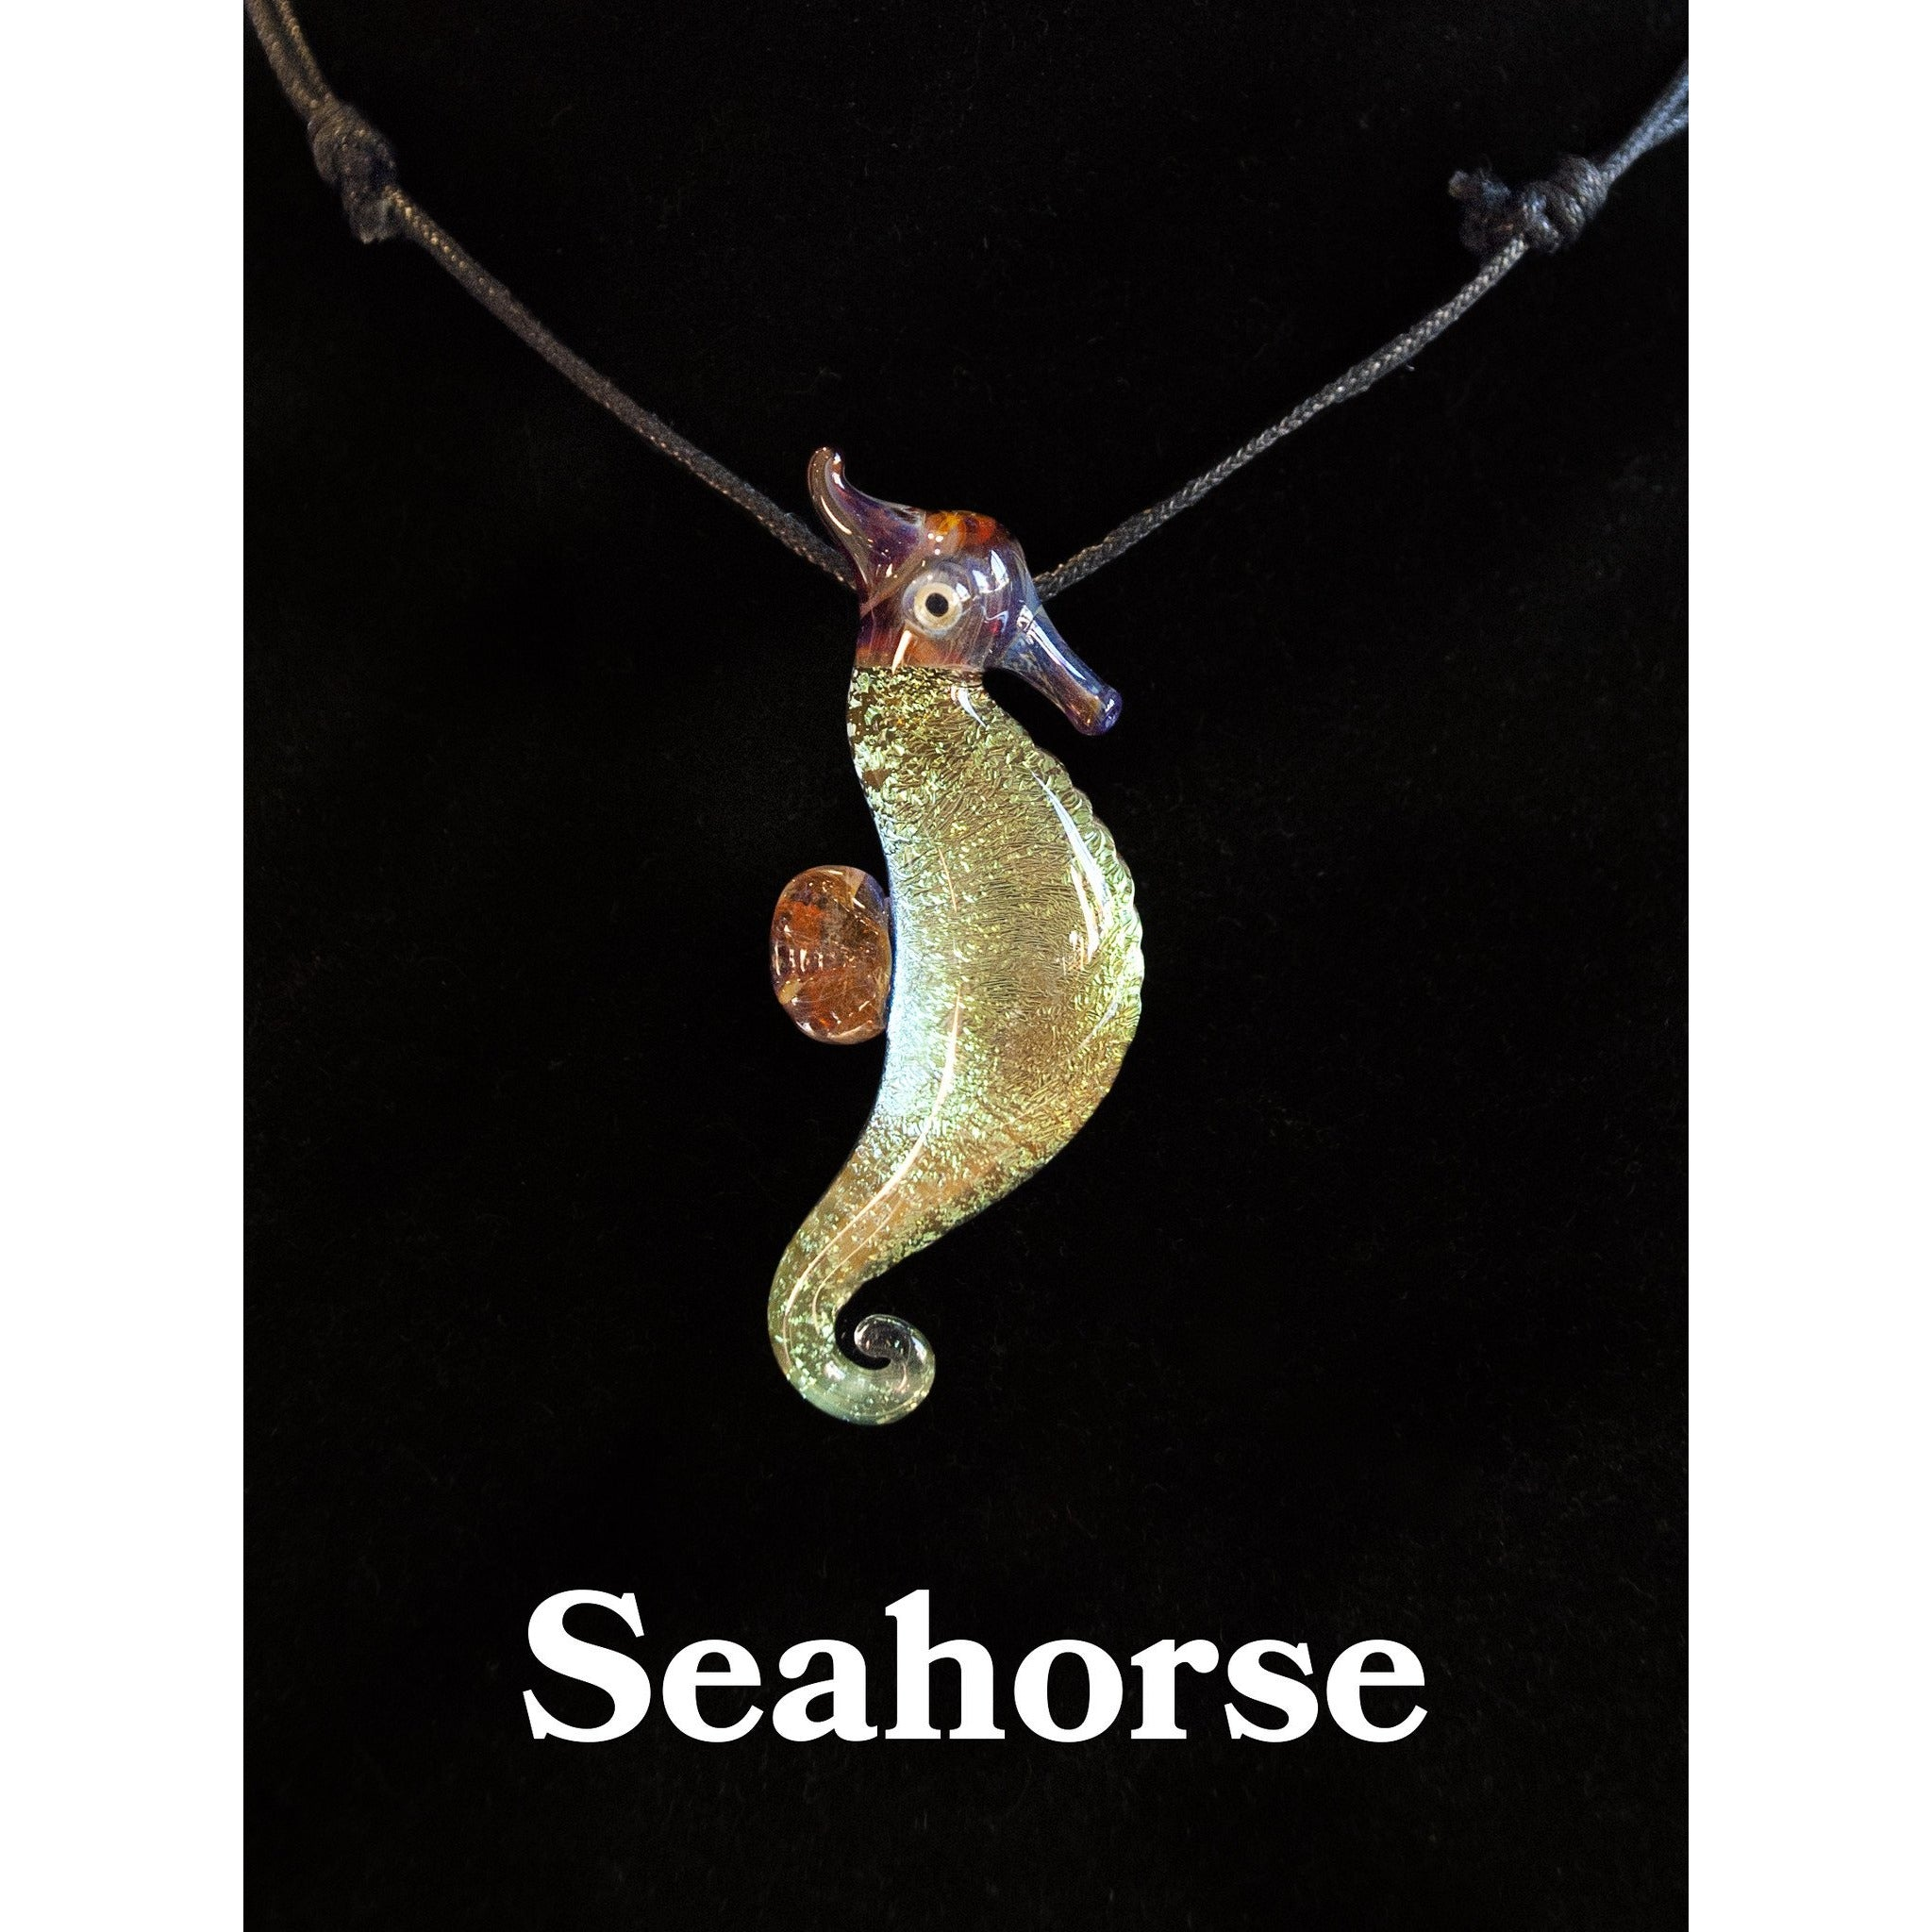 Seahorse Glass Necklace - Cali Kind Clothing Co.